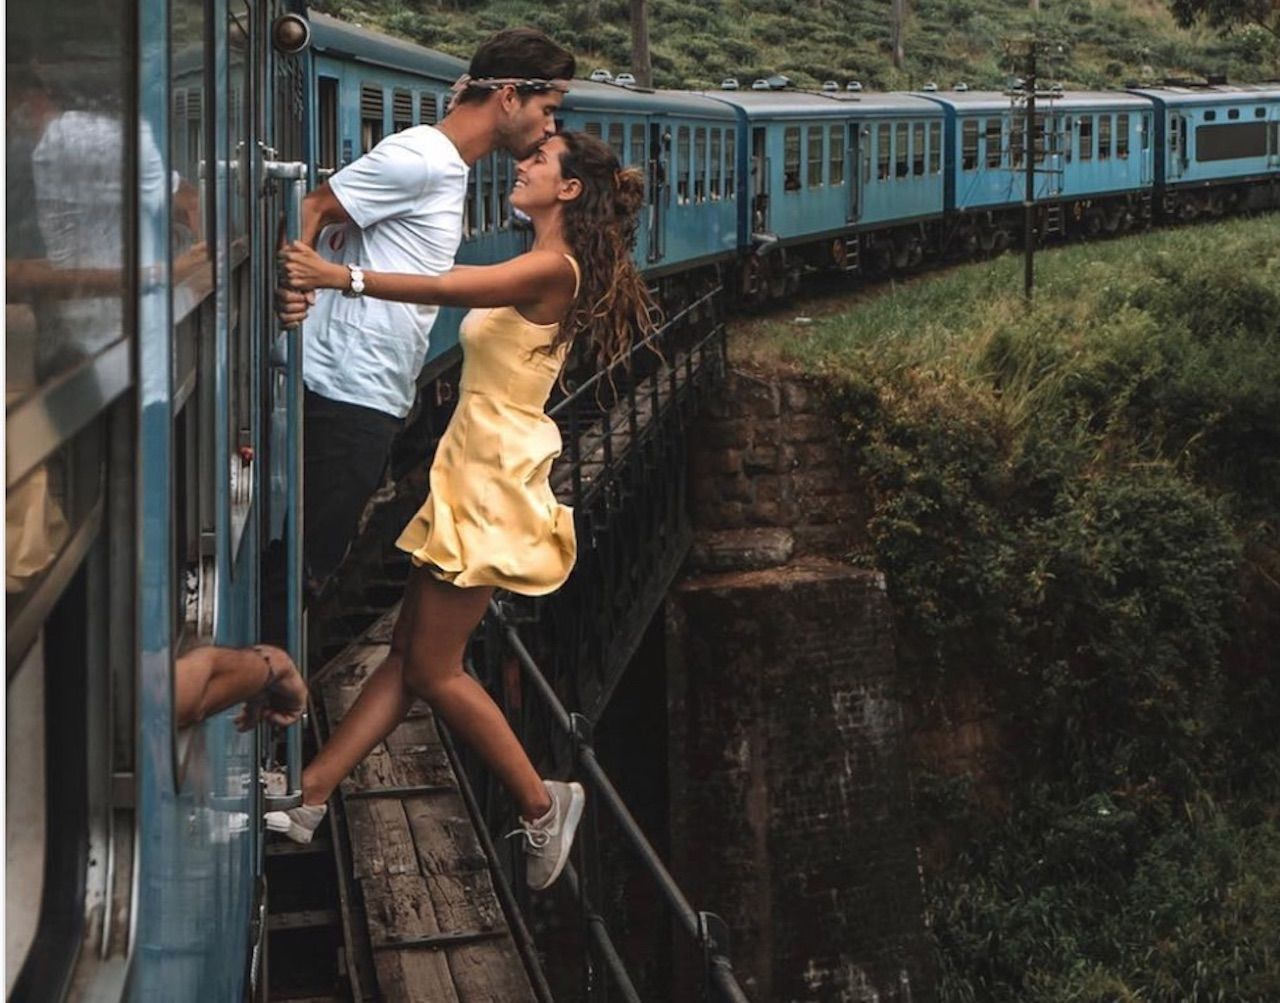 Couple takes photo from train